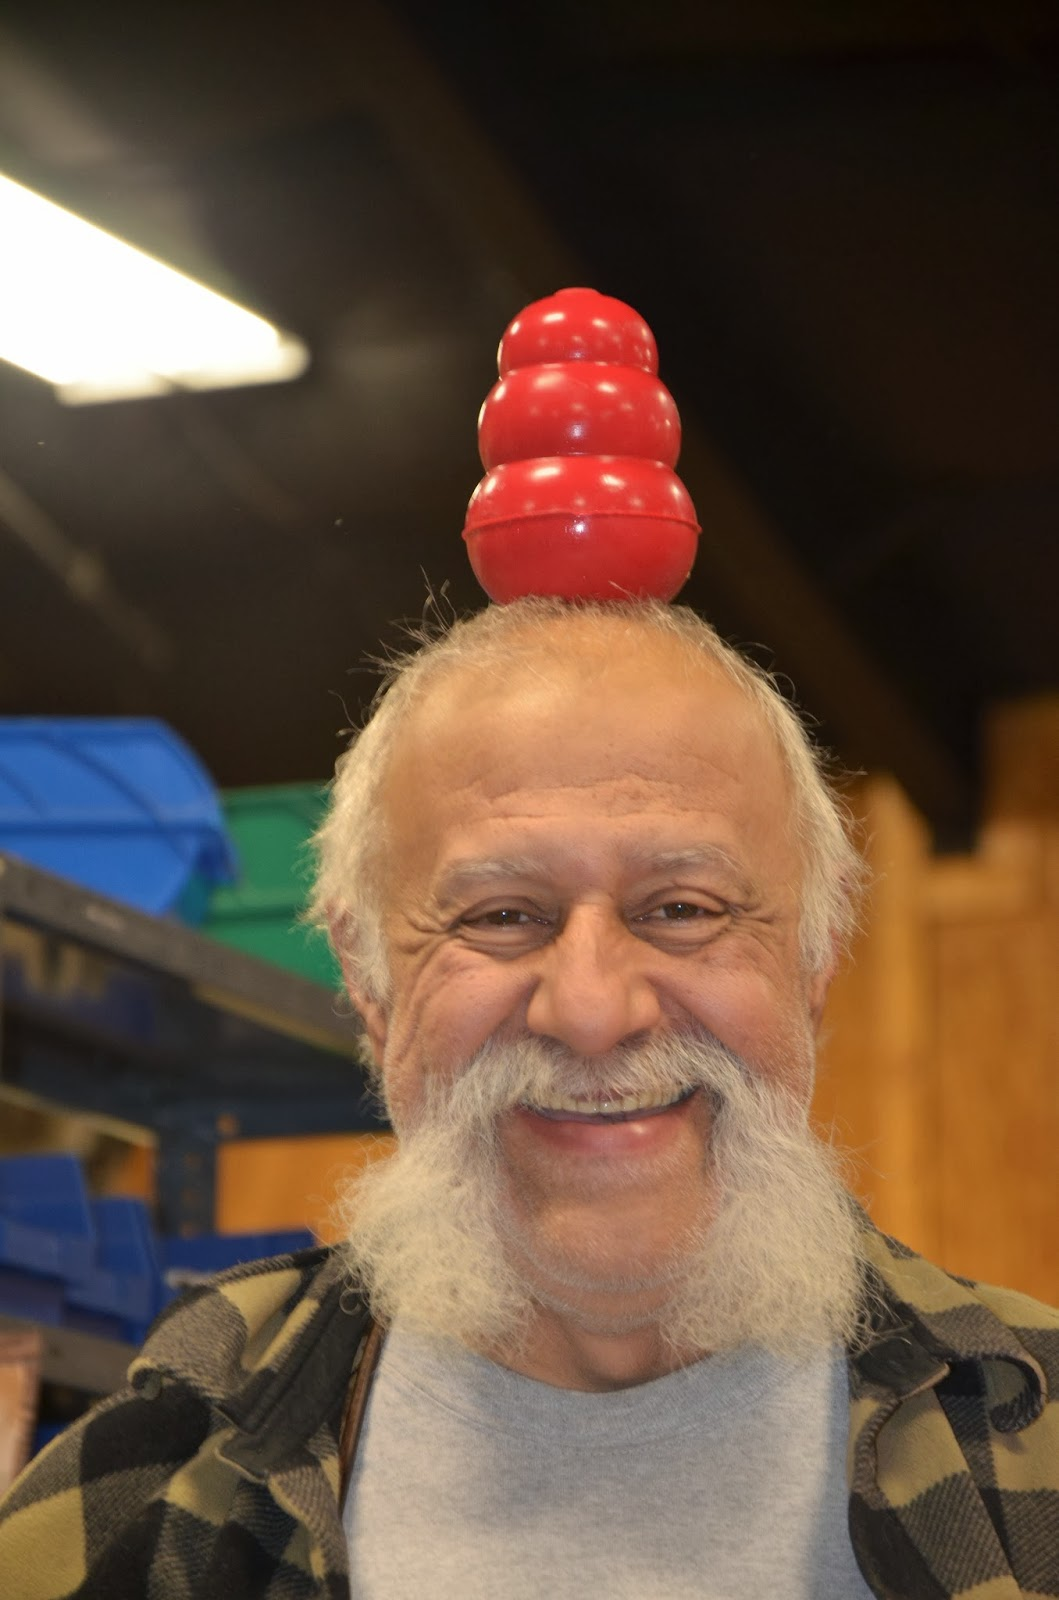 Balancing a KONG on his head